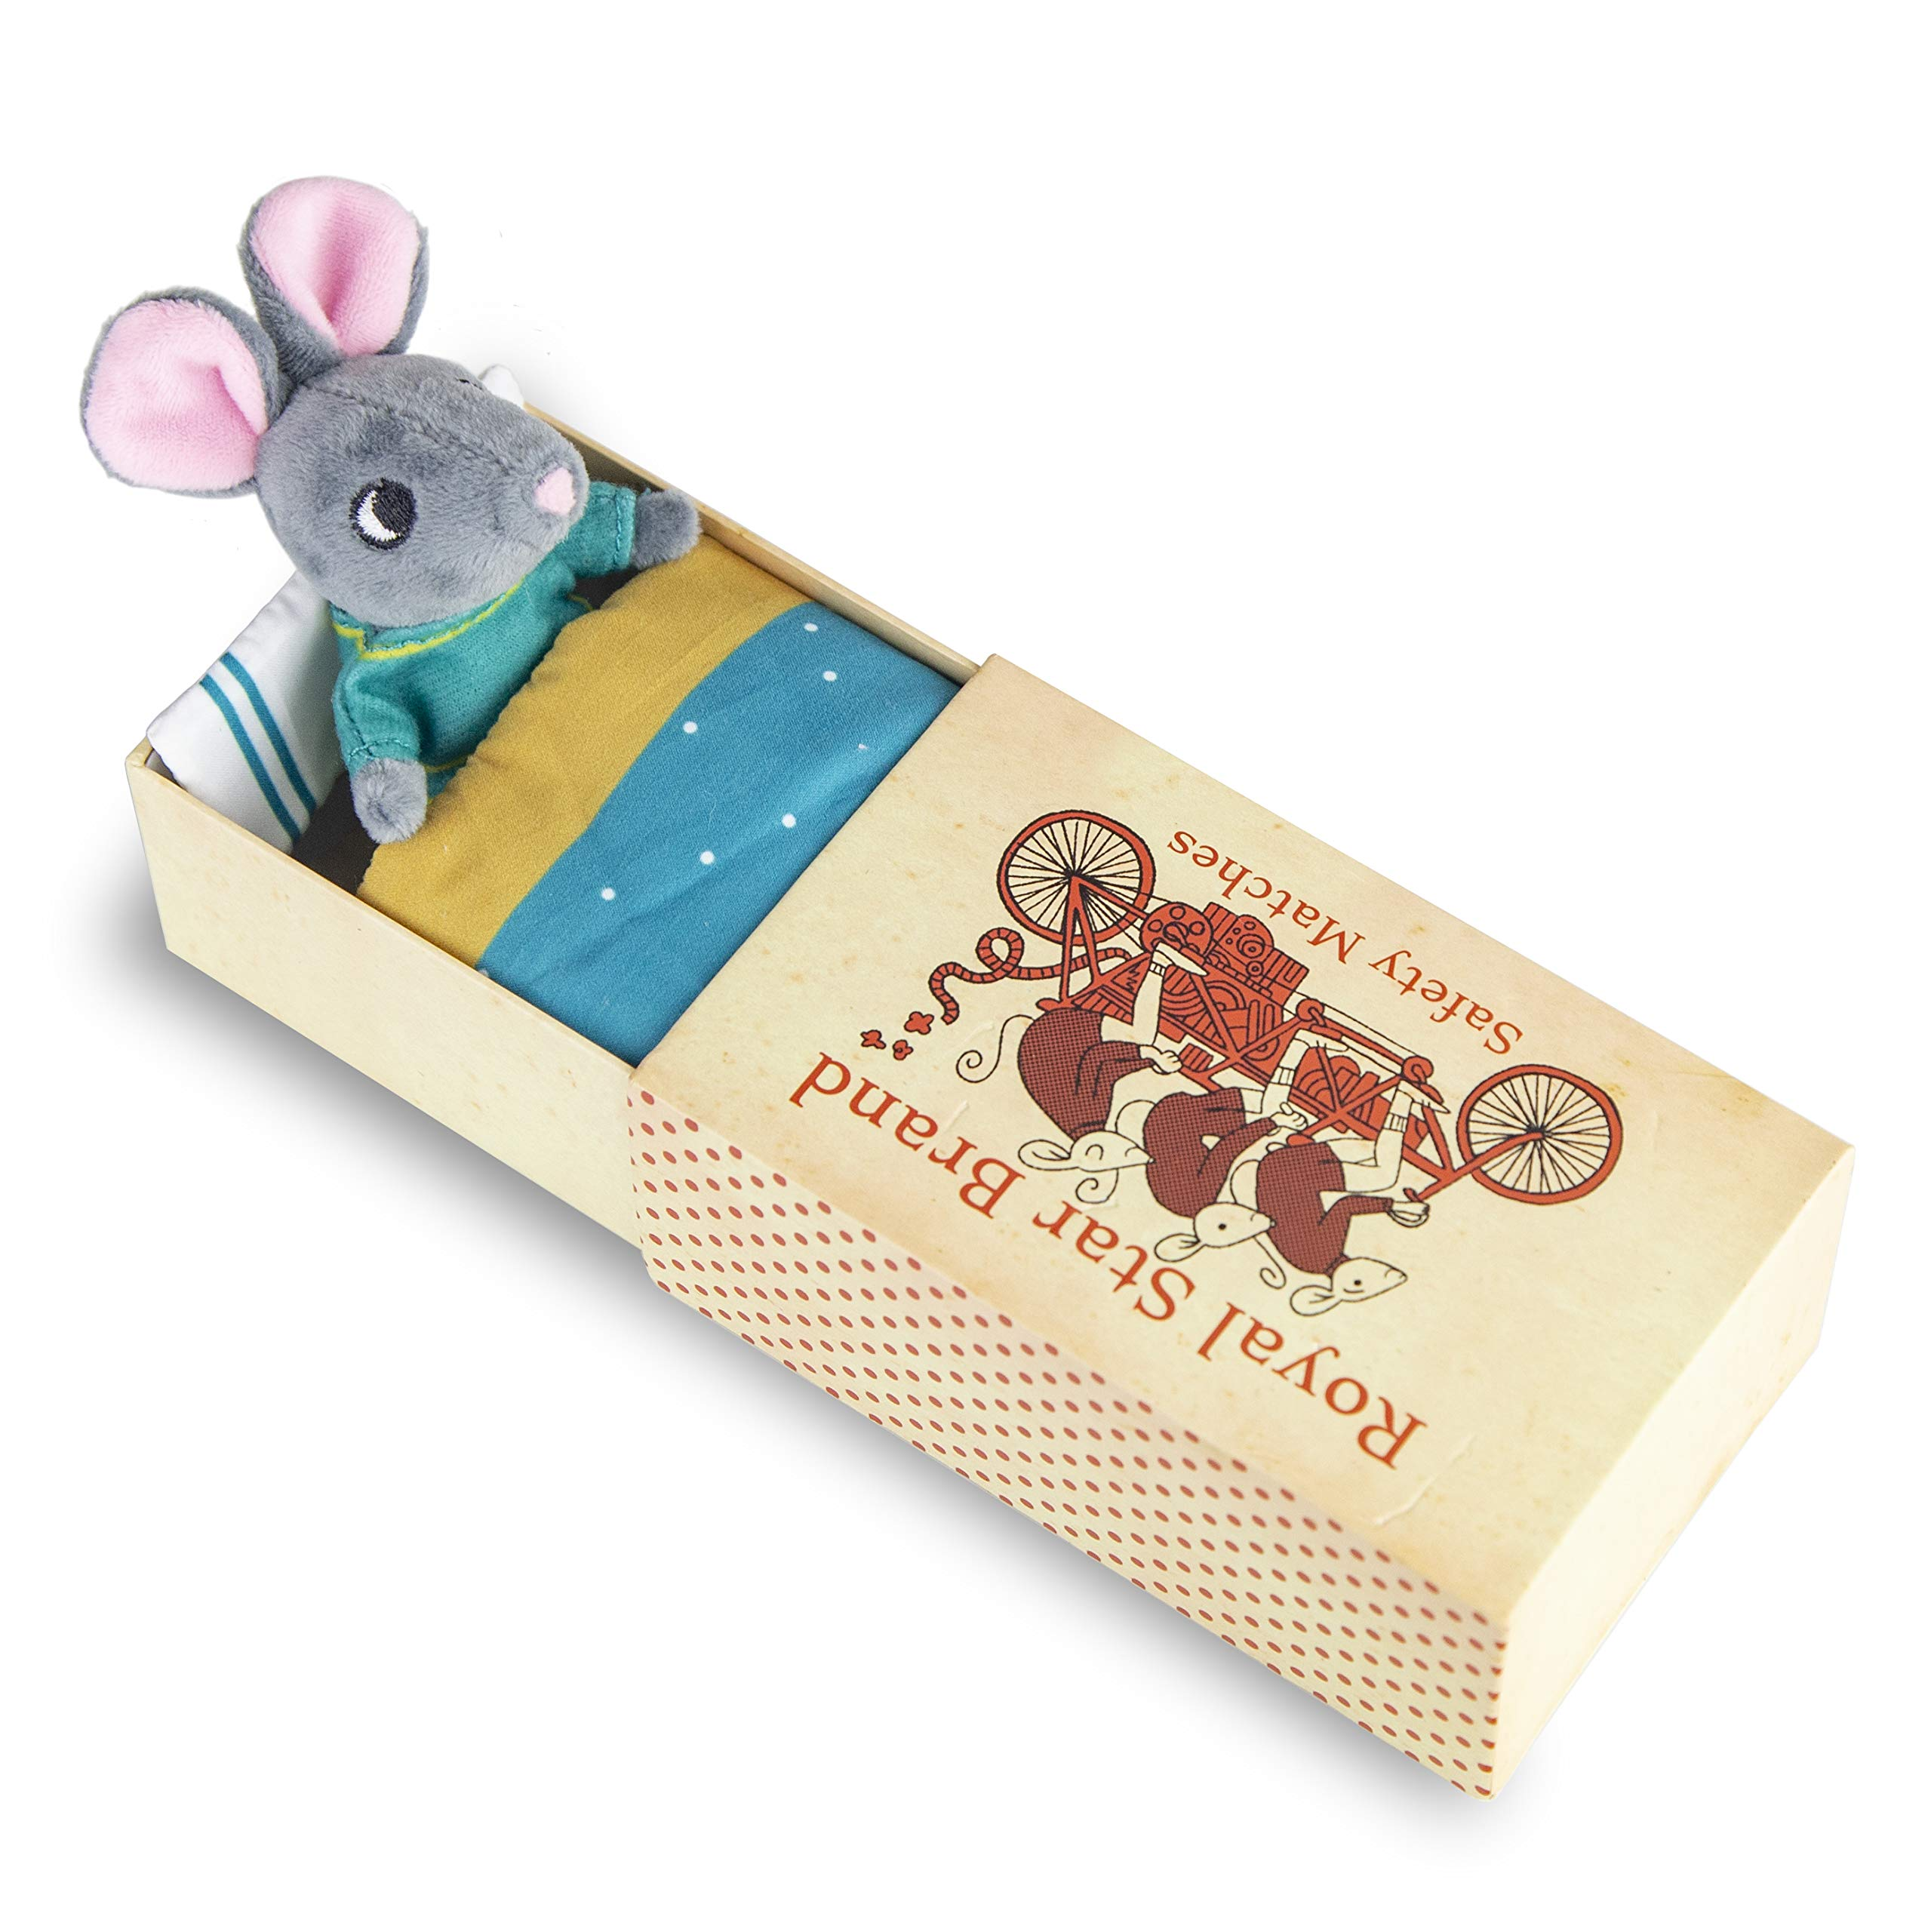 Foothill Toy Co. Matchbox Mouse - Playset with Plush Toy Mouse in a Box, Harper by Foothill Toy Co.